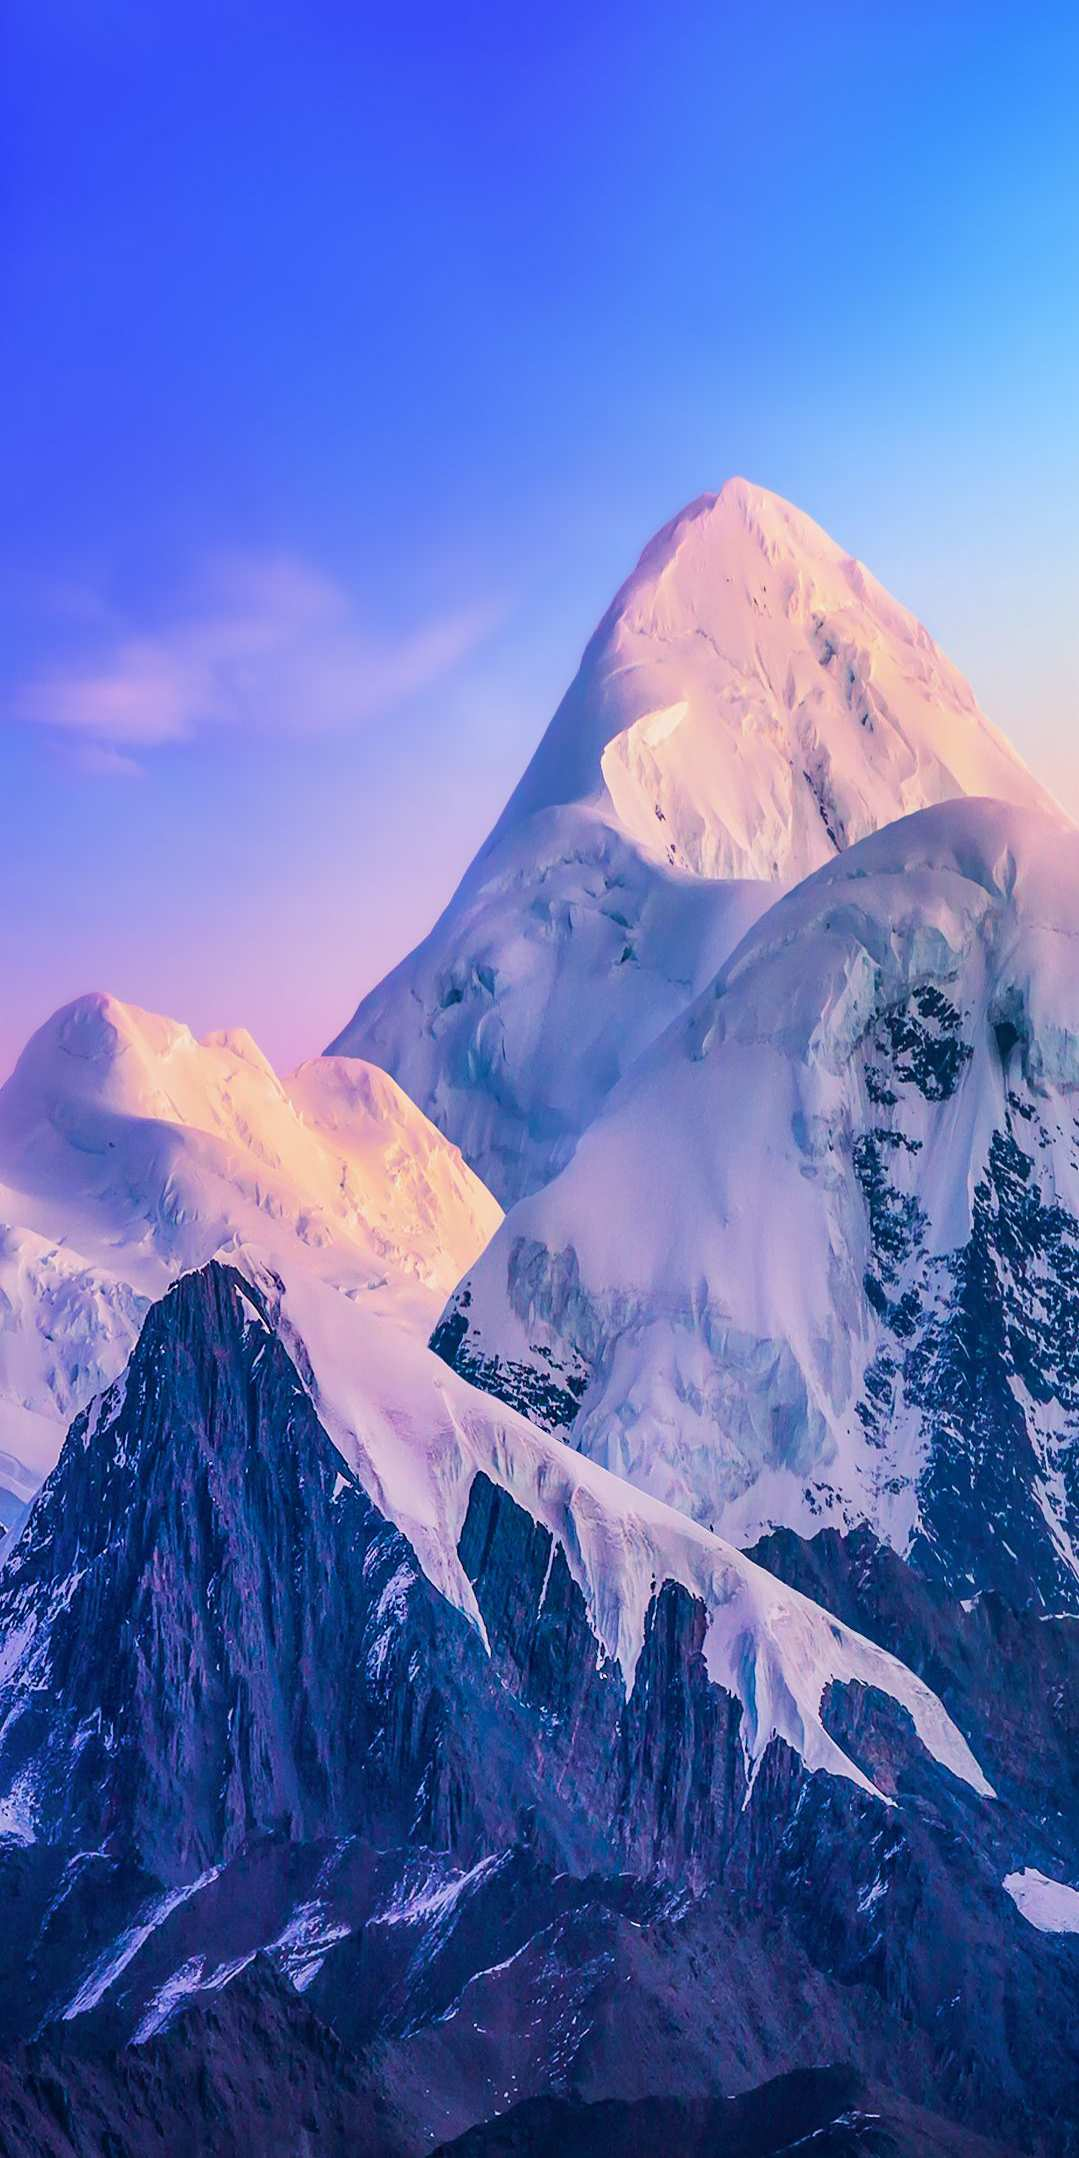 Snow Winter Nature Mountains iPhone Wallpaper